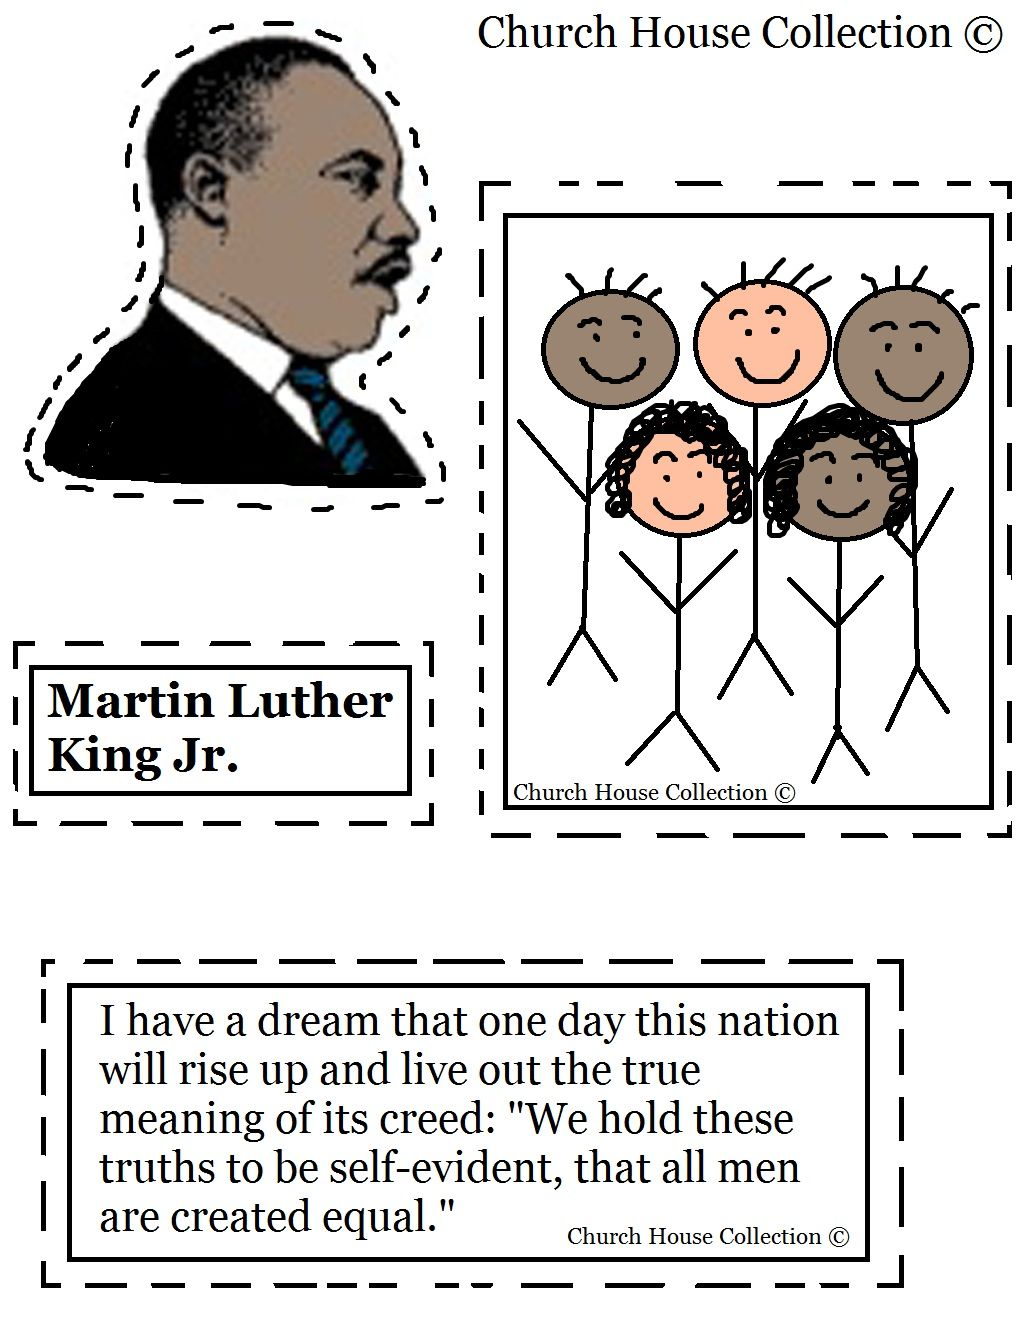 worksheet Martin Luther King Worksheet martin luther king worksheets kindergarten jr 1000 images about mlk on pinterest big words nuest and worksheets